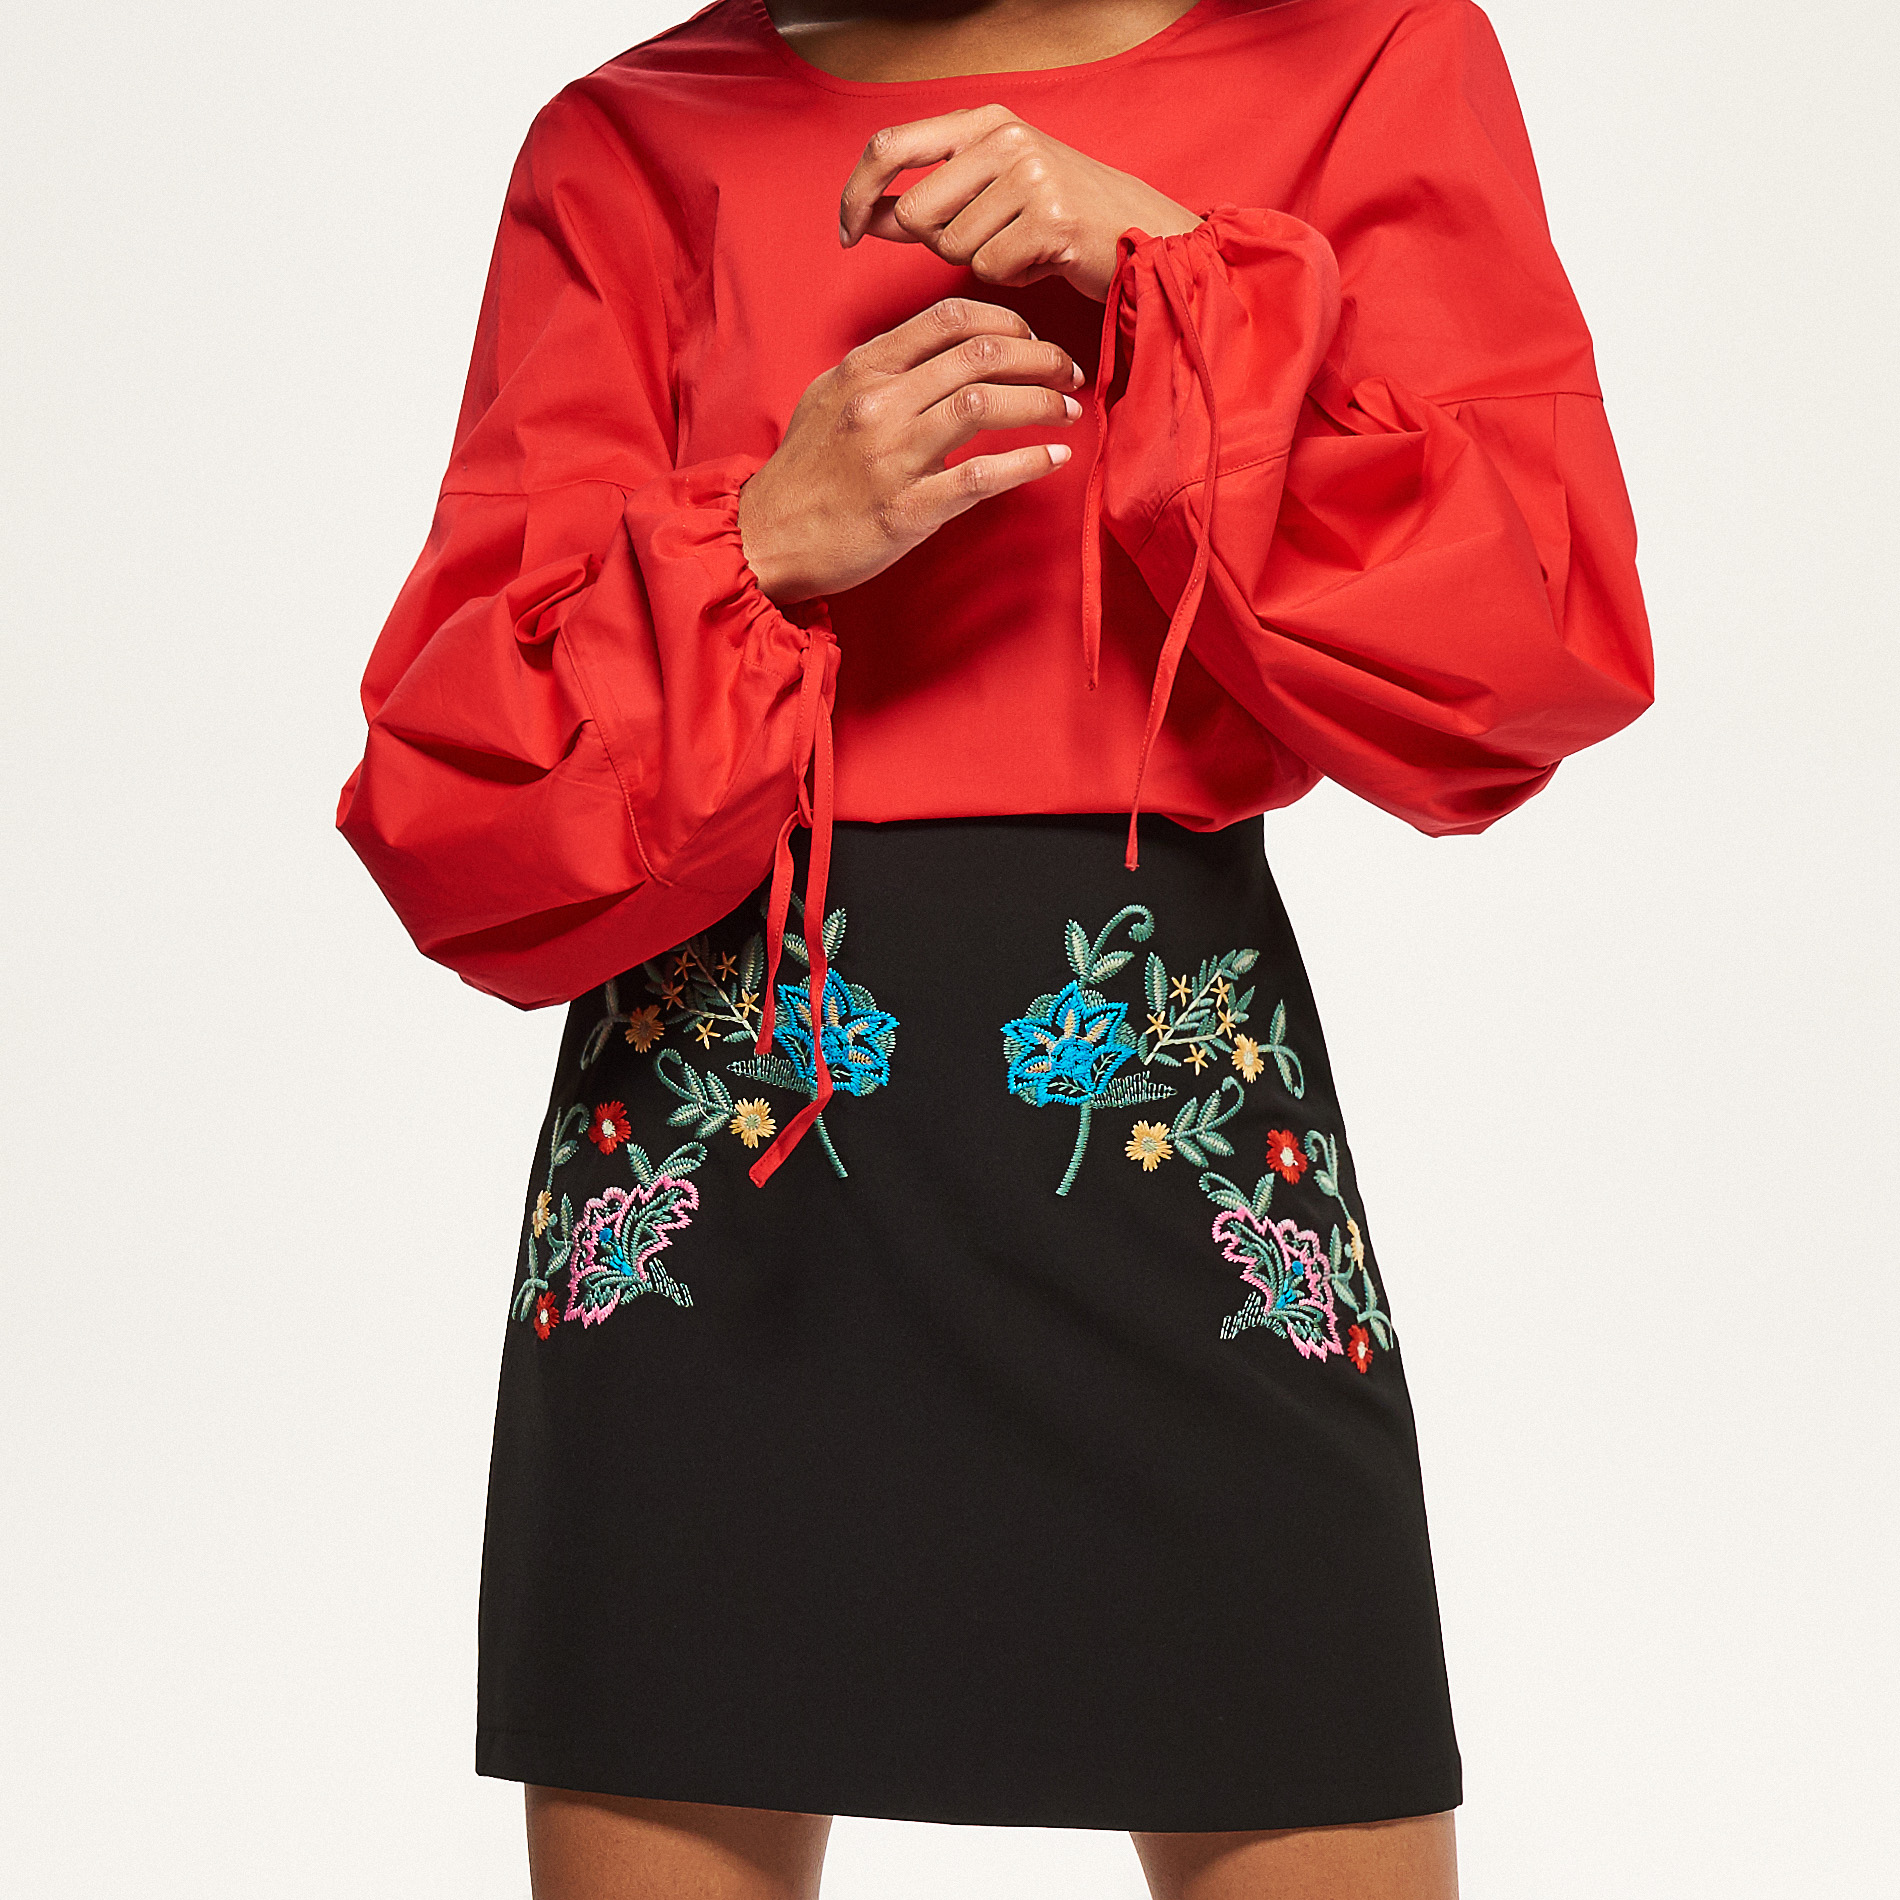 <a href='http://www.reserved.com/hu/hu/woman/all/clothes/blouses/rr425-33x/blouse-with-wide-sleeves' target='_blank' rel='noopener noreferrer'>Reserved</a></p>